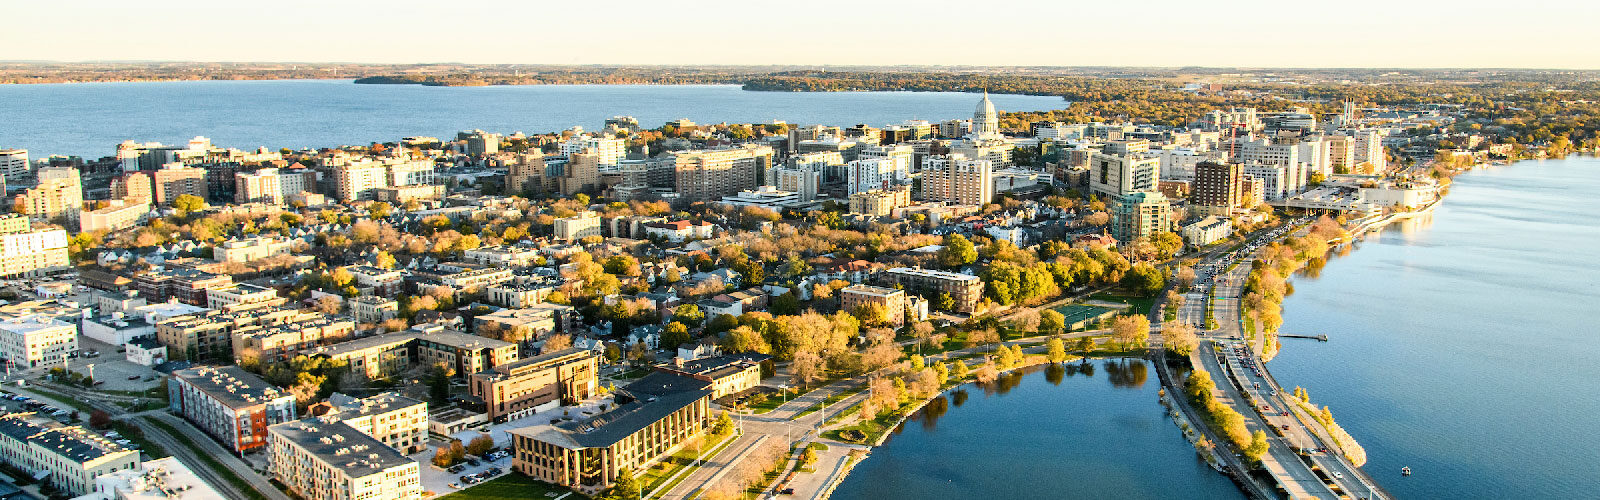 Aerial photograph of the isthmus of the city of Madison, showing lakes Mendota and Monona and the state Capitol building.